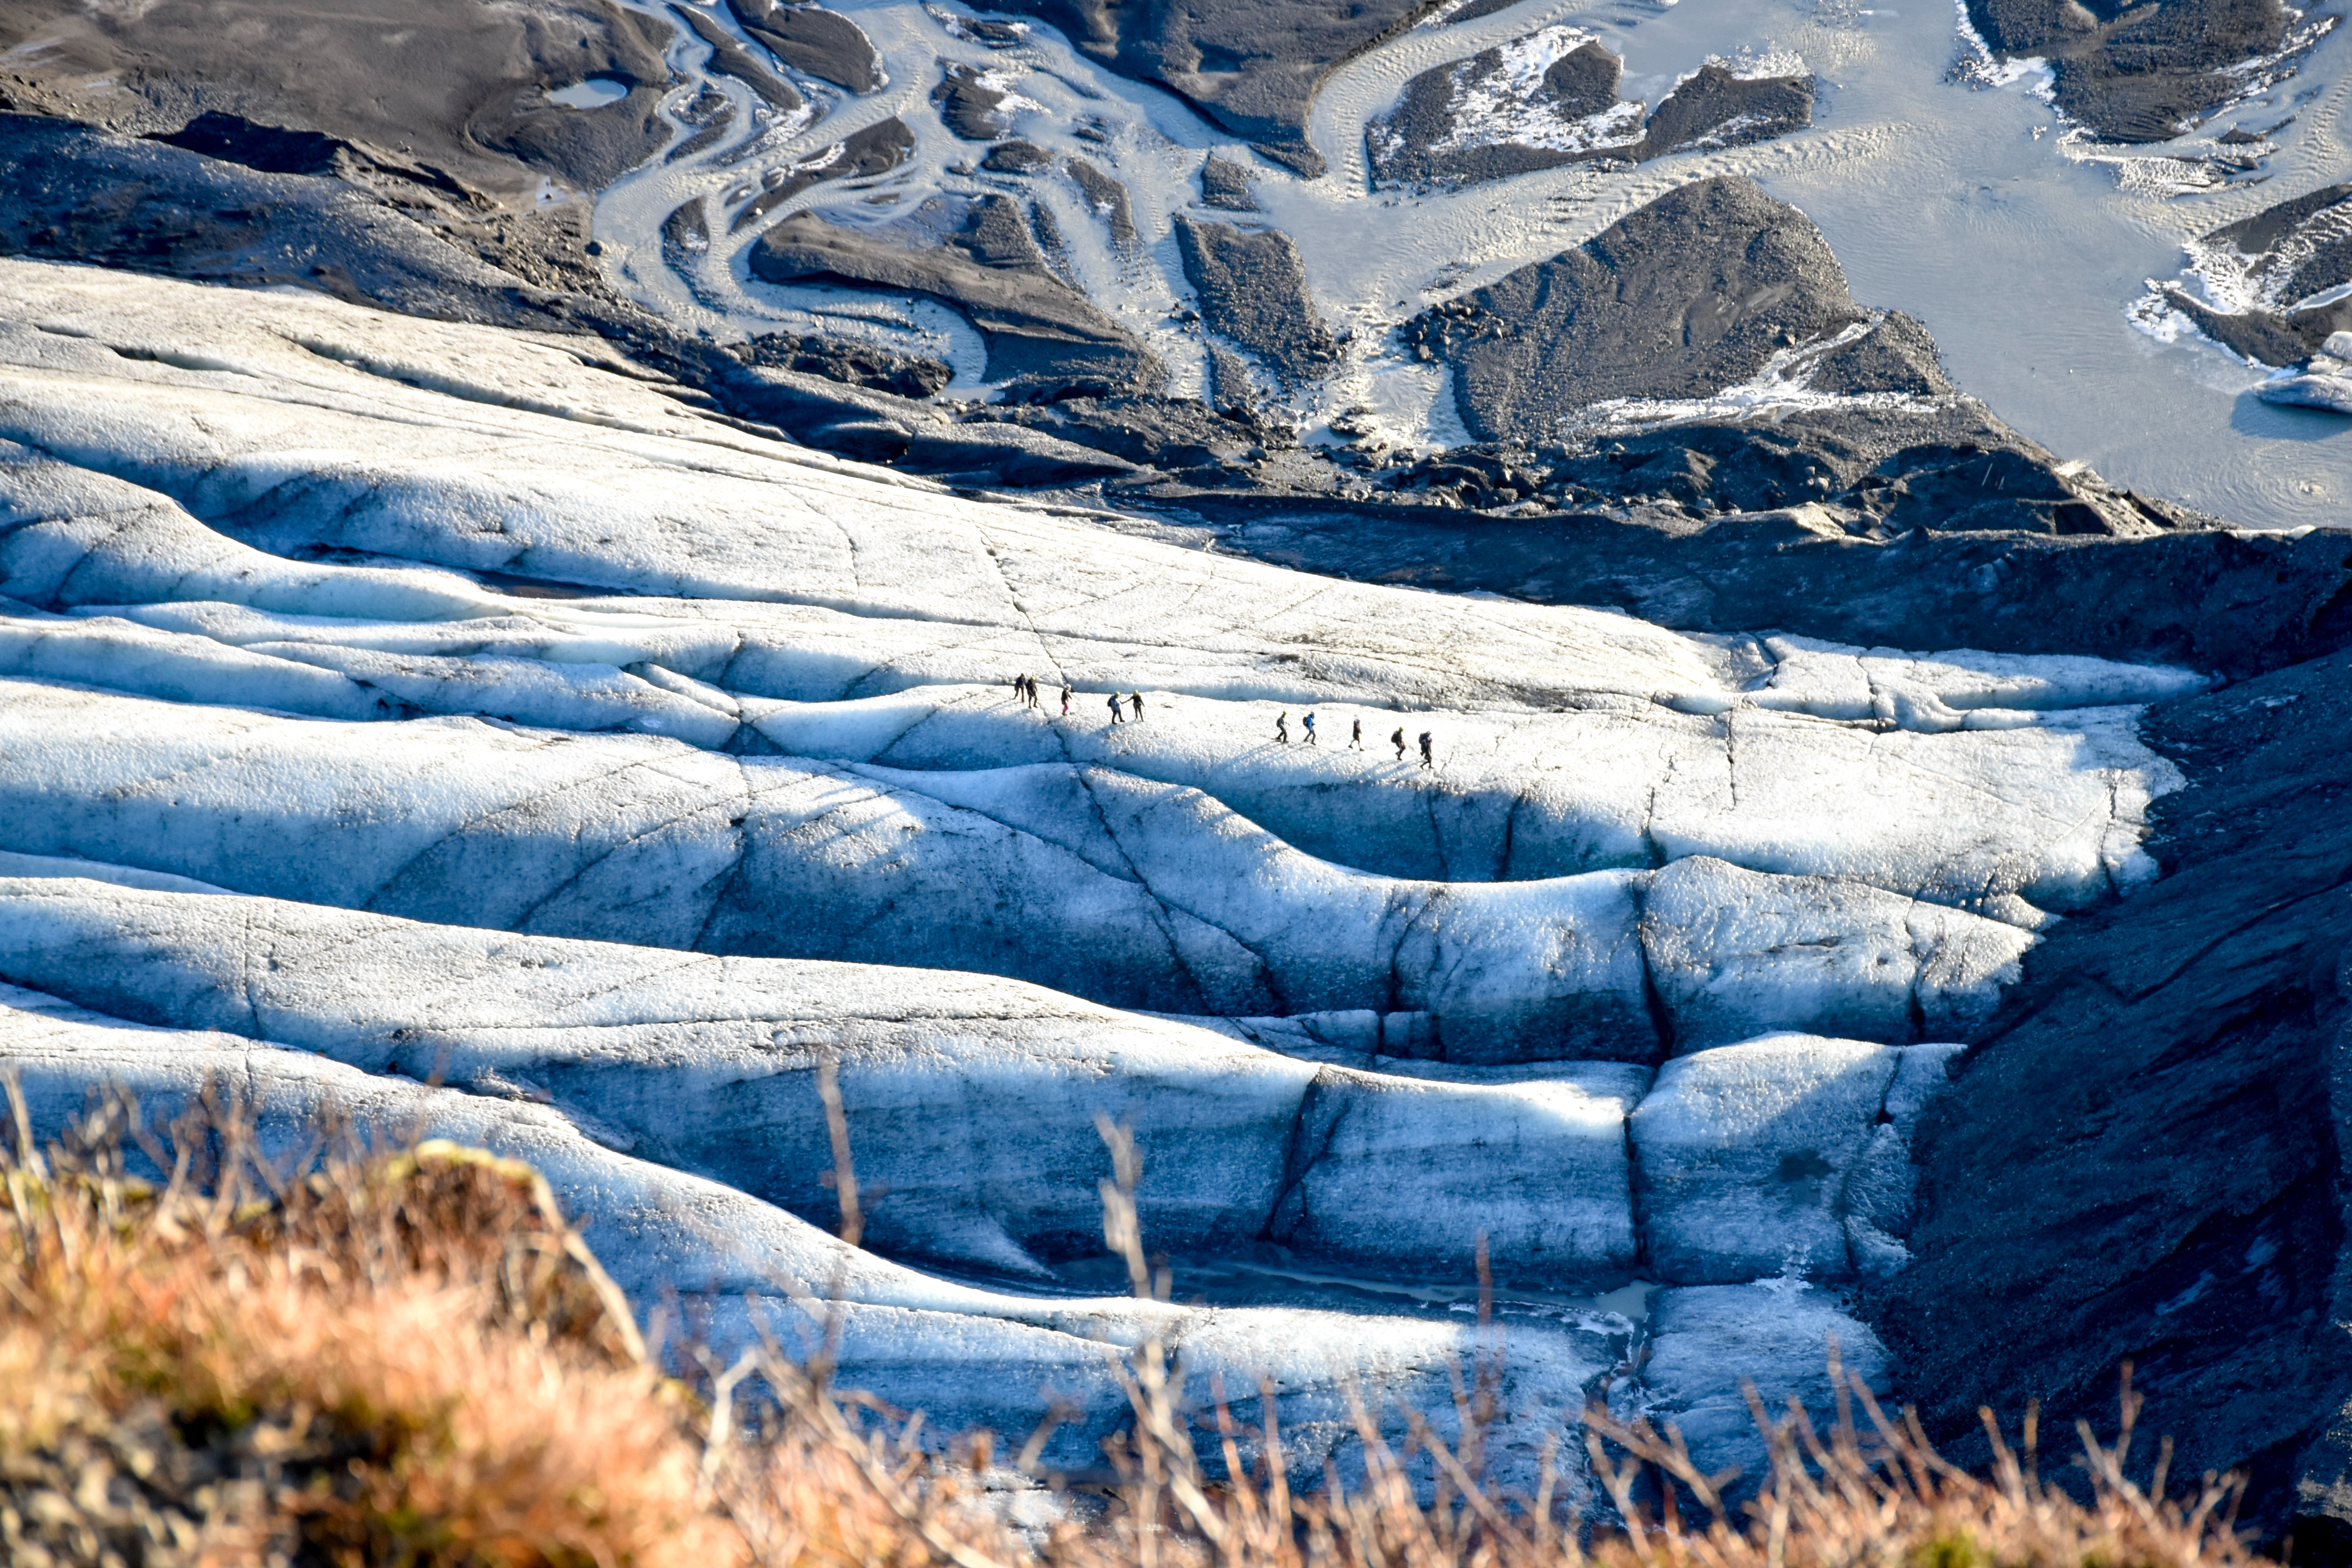 Climbing glacier, Adventurous Things To Do In Iceland